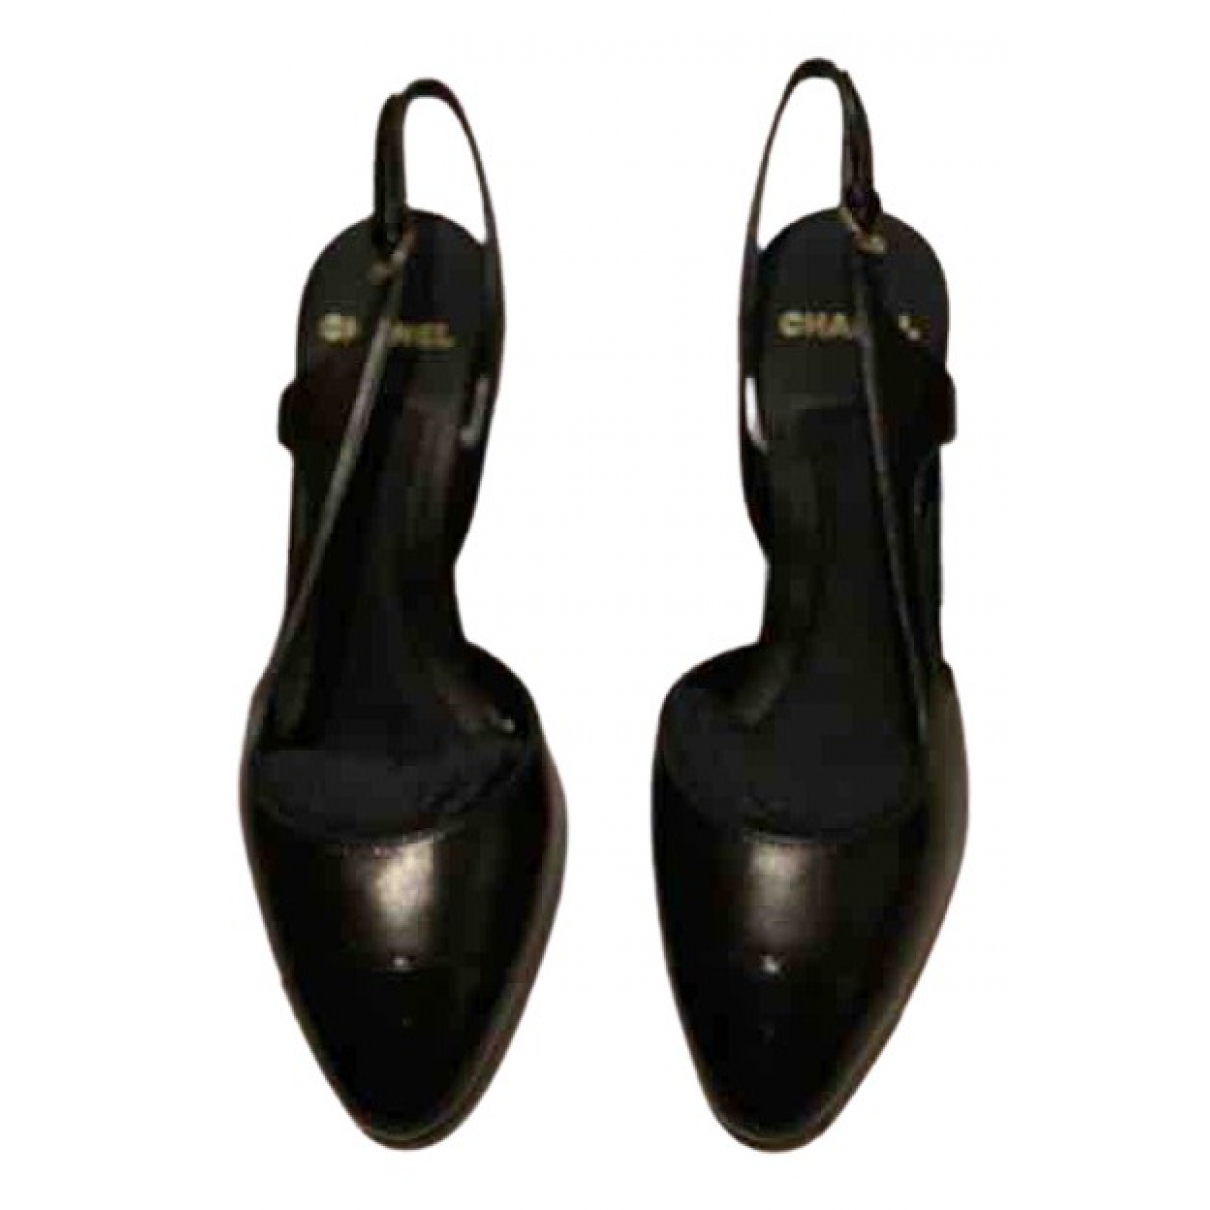 Chanel Slingback Black Leather Ballet flats for Women 36 EU